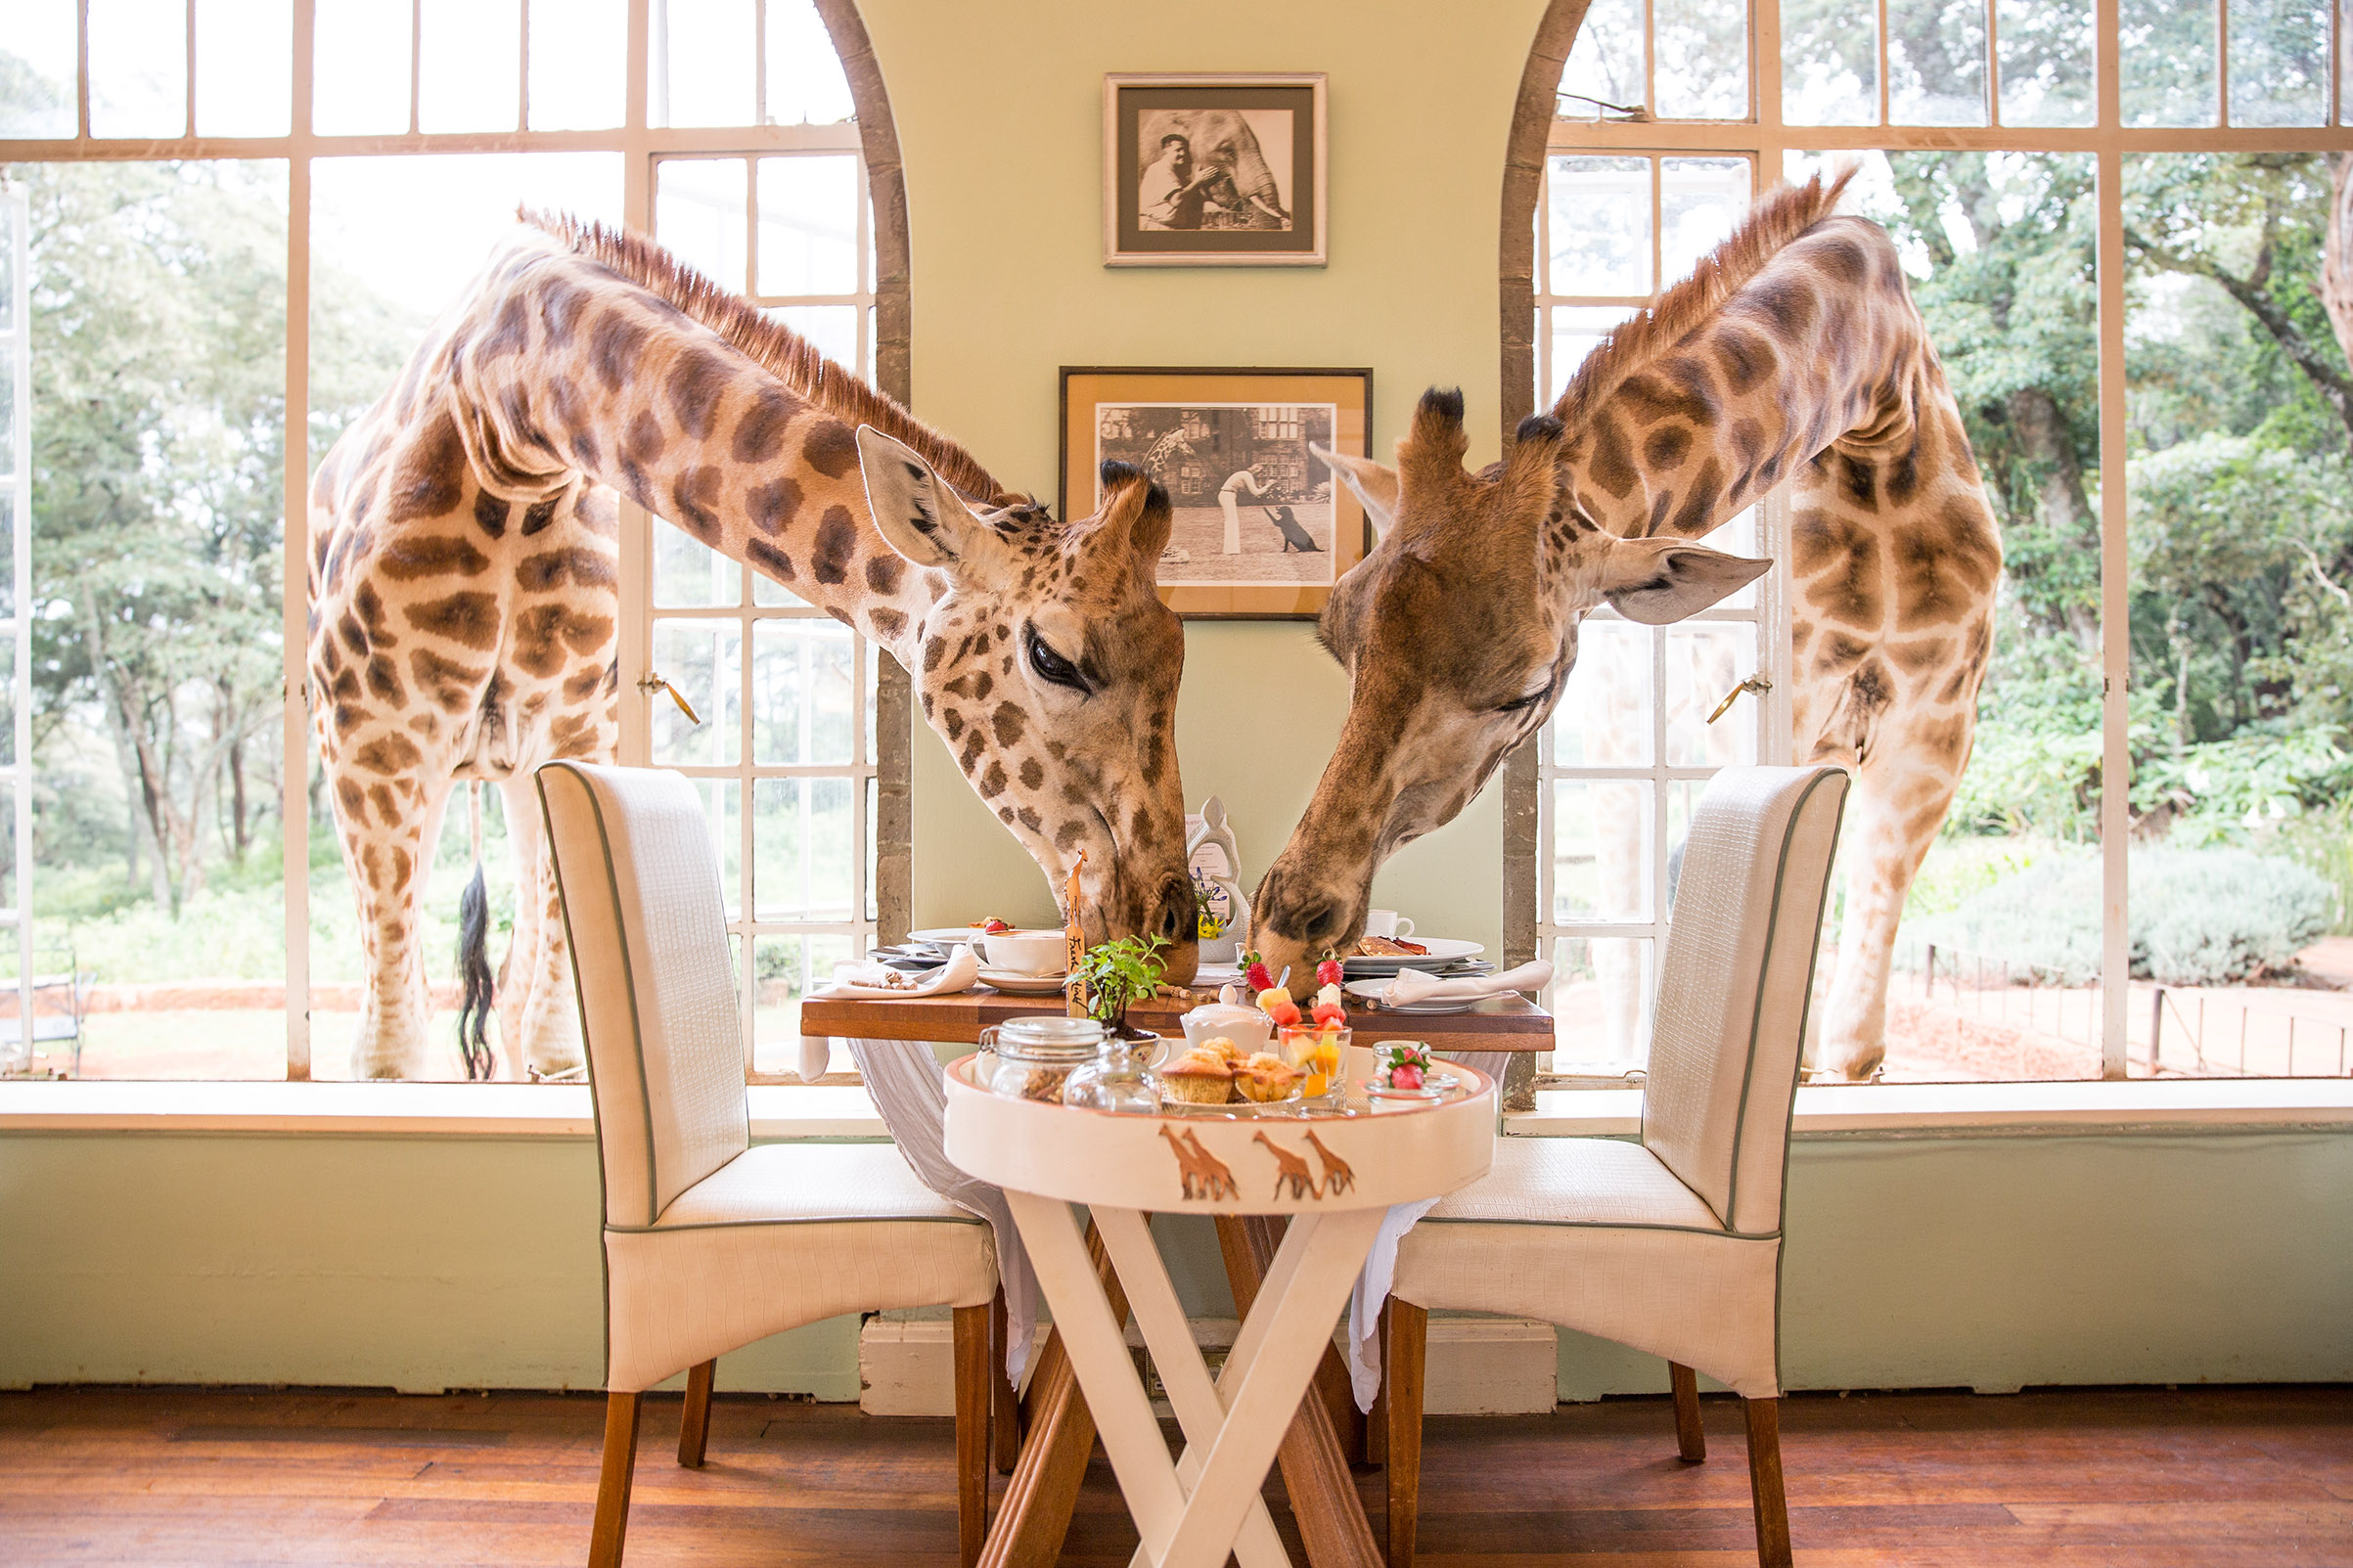 Giraffe Manor Is One of the World's Greatest Places 2018 | Time.com